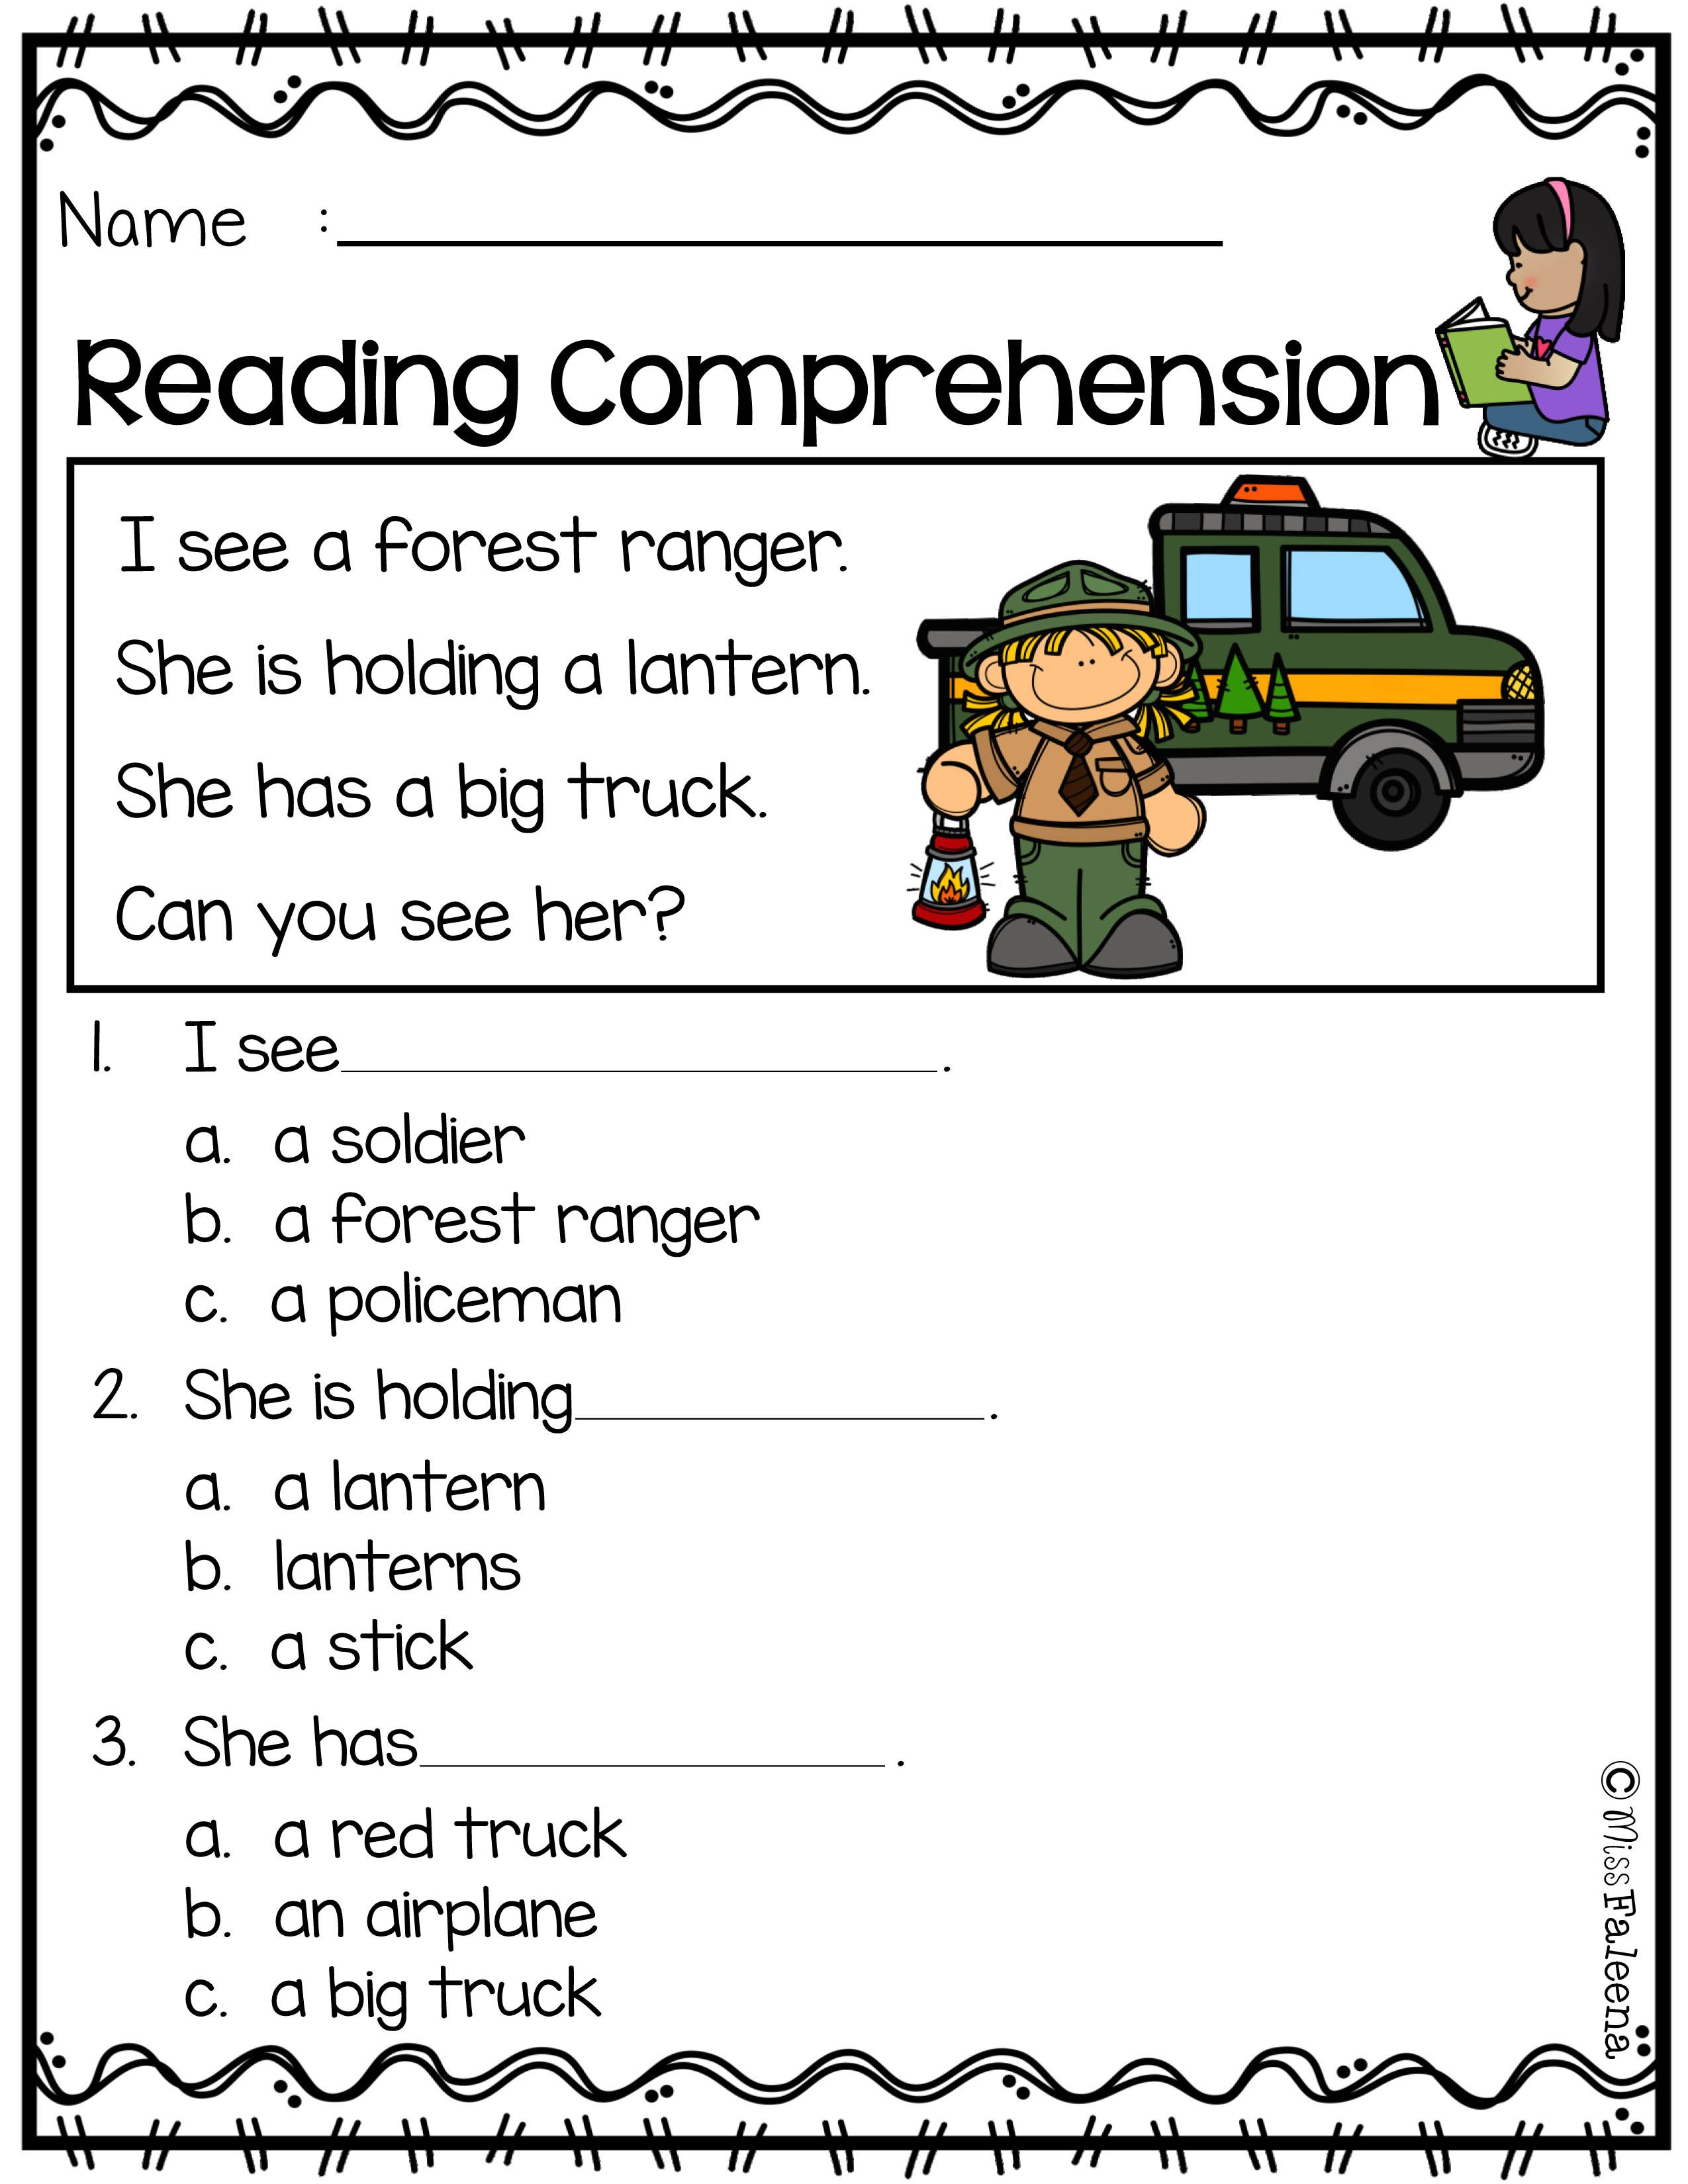 Free Reading Comprehension Is Suitable For Kindergarten Students Or B Reading Comprehension Reading Comprehension Kindergarten Reading Comprehension Worksheets [ 3300 x 2550 Pixel ]